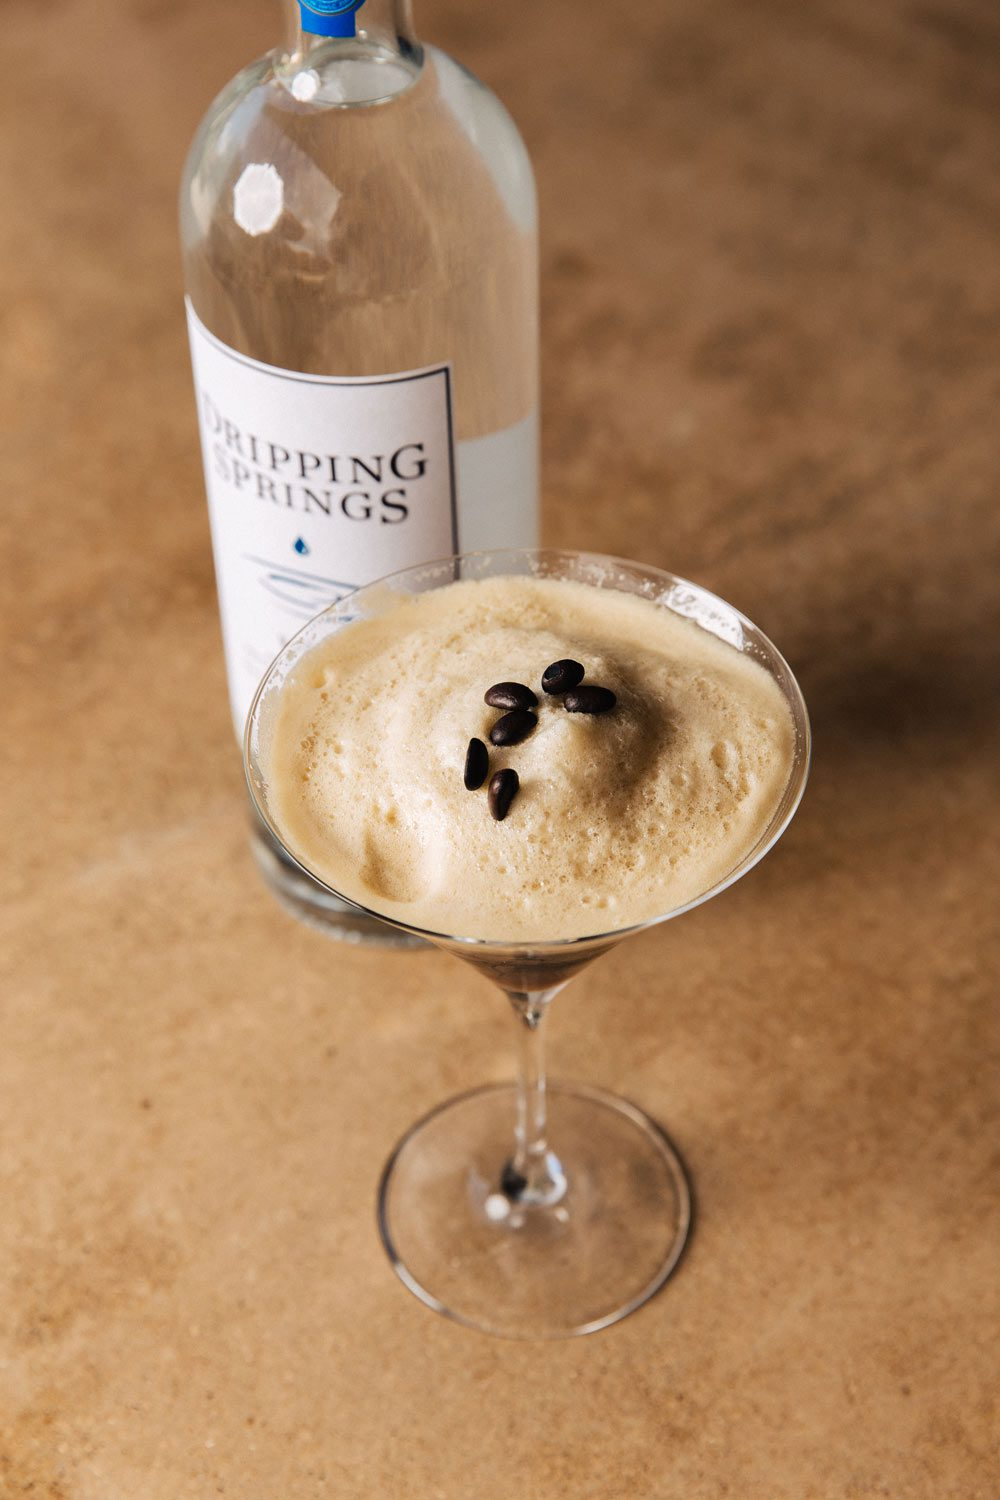 expresso-martini-dripping-springs-vodka-2